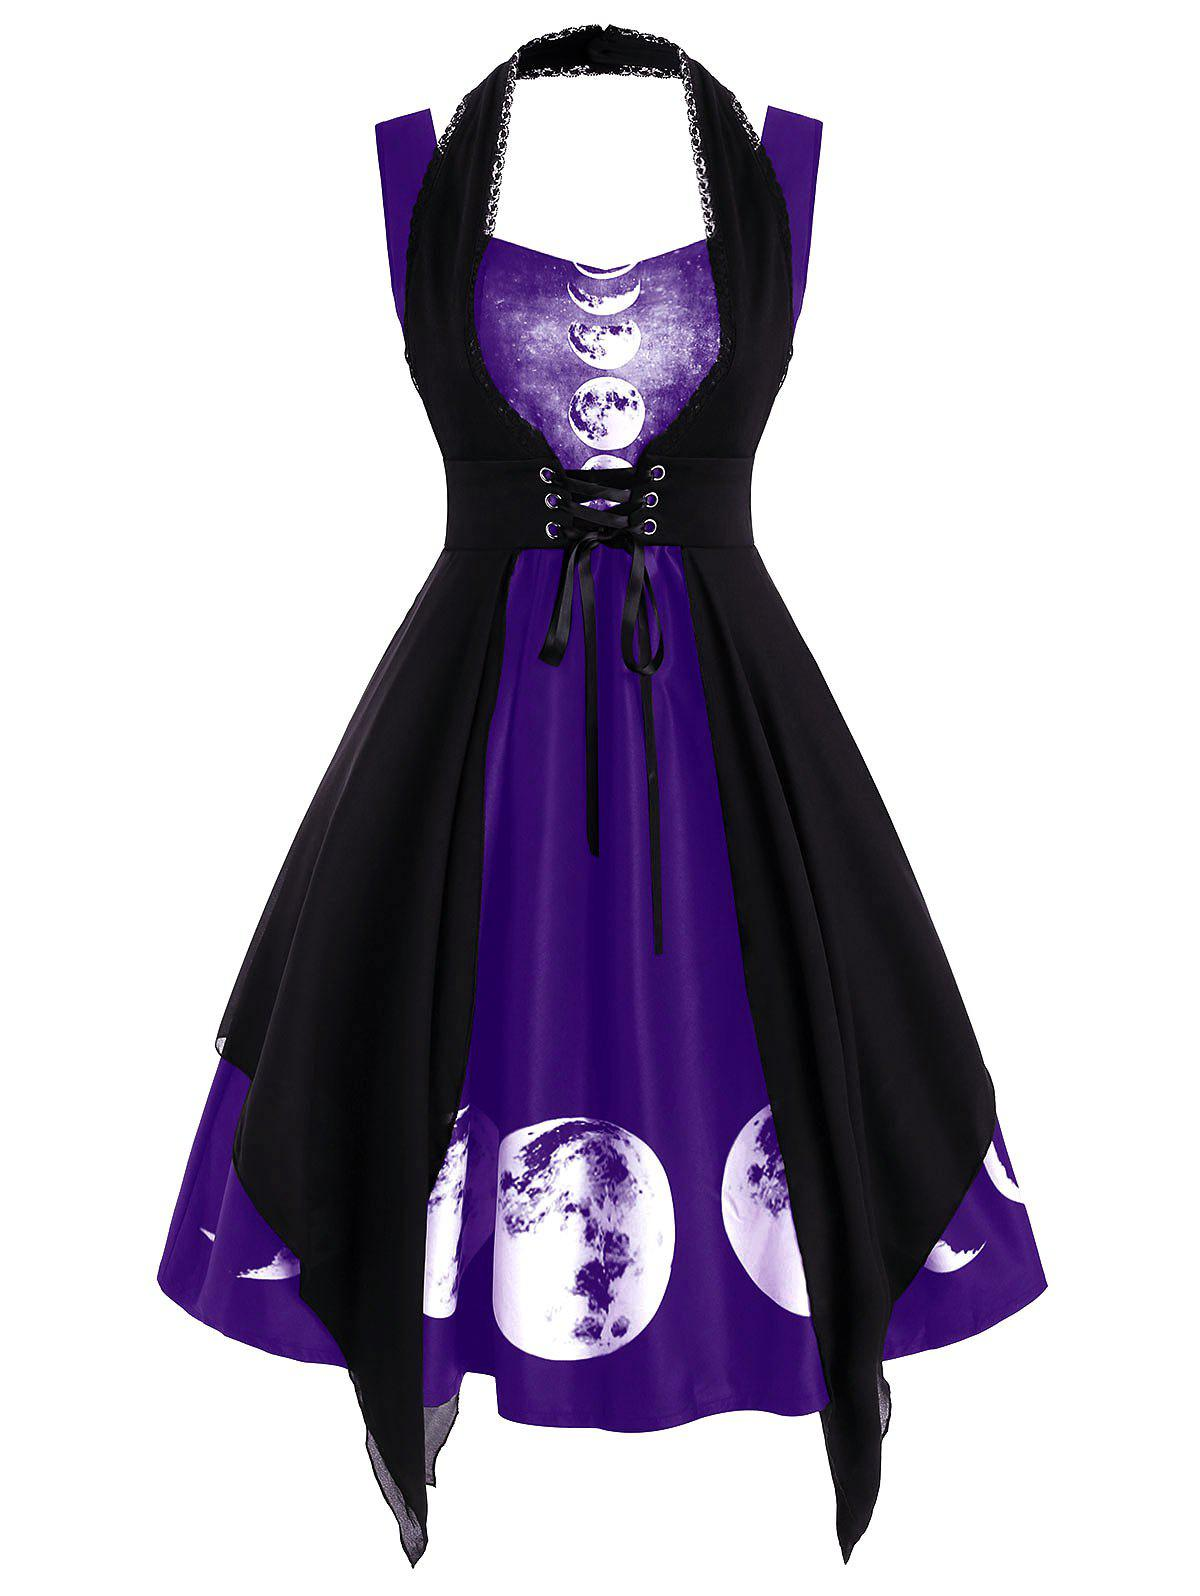 Online Sweetheart Lunar Eclipse Print Dress with Lace Panel Corset